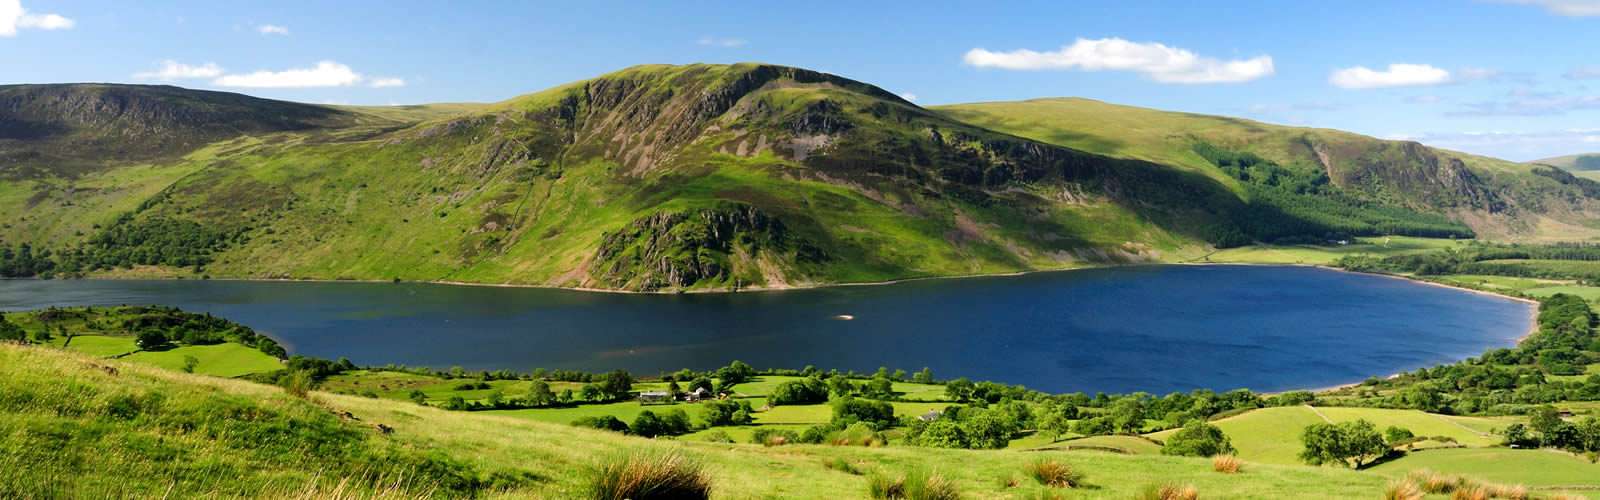 Cumbria, Lake District